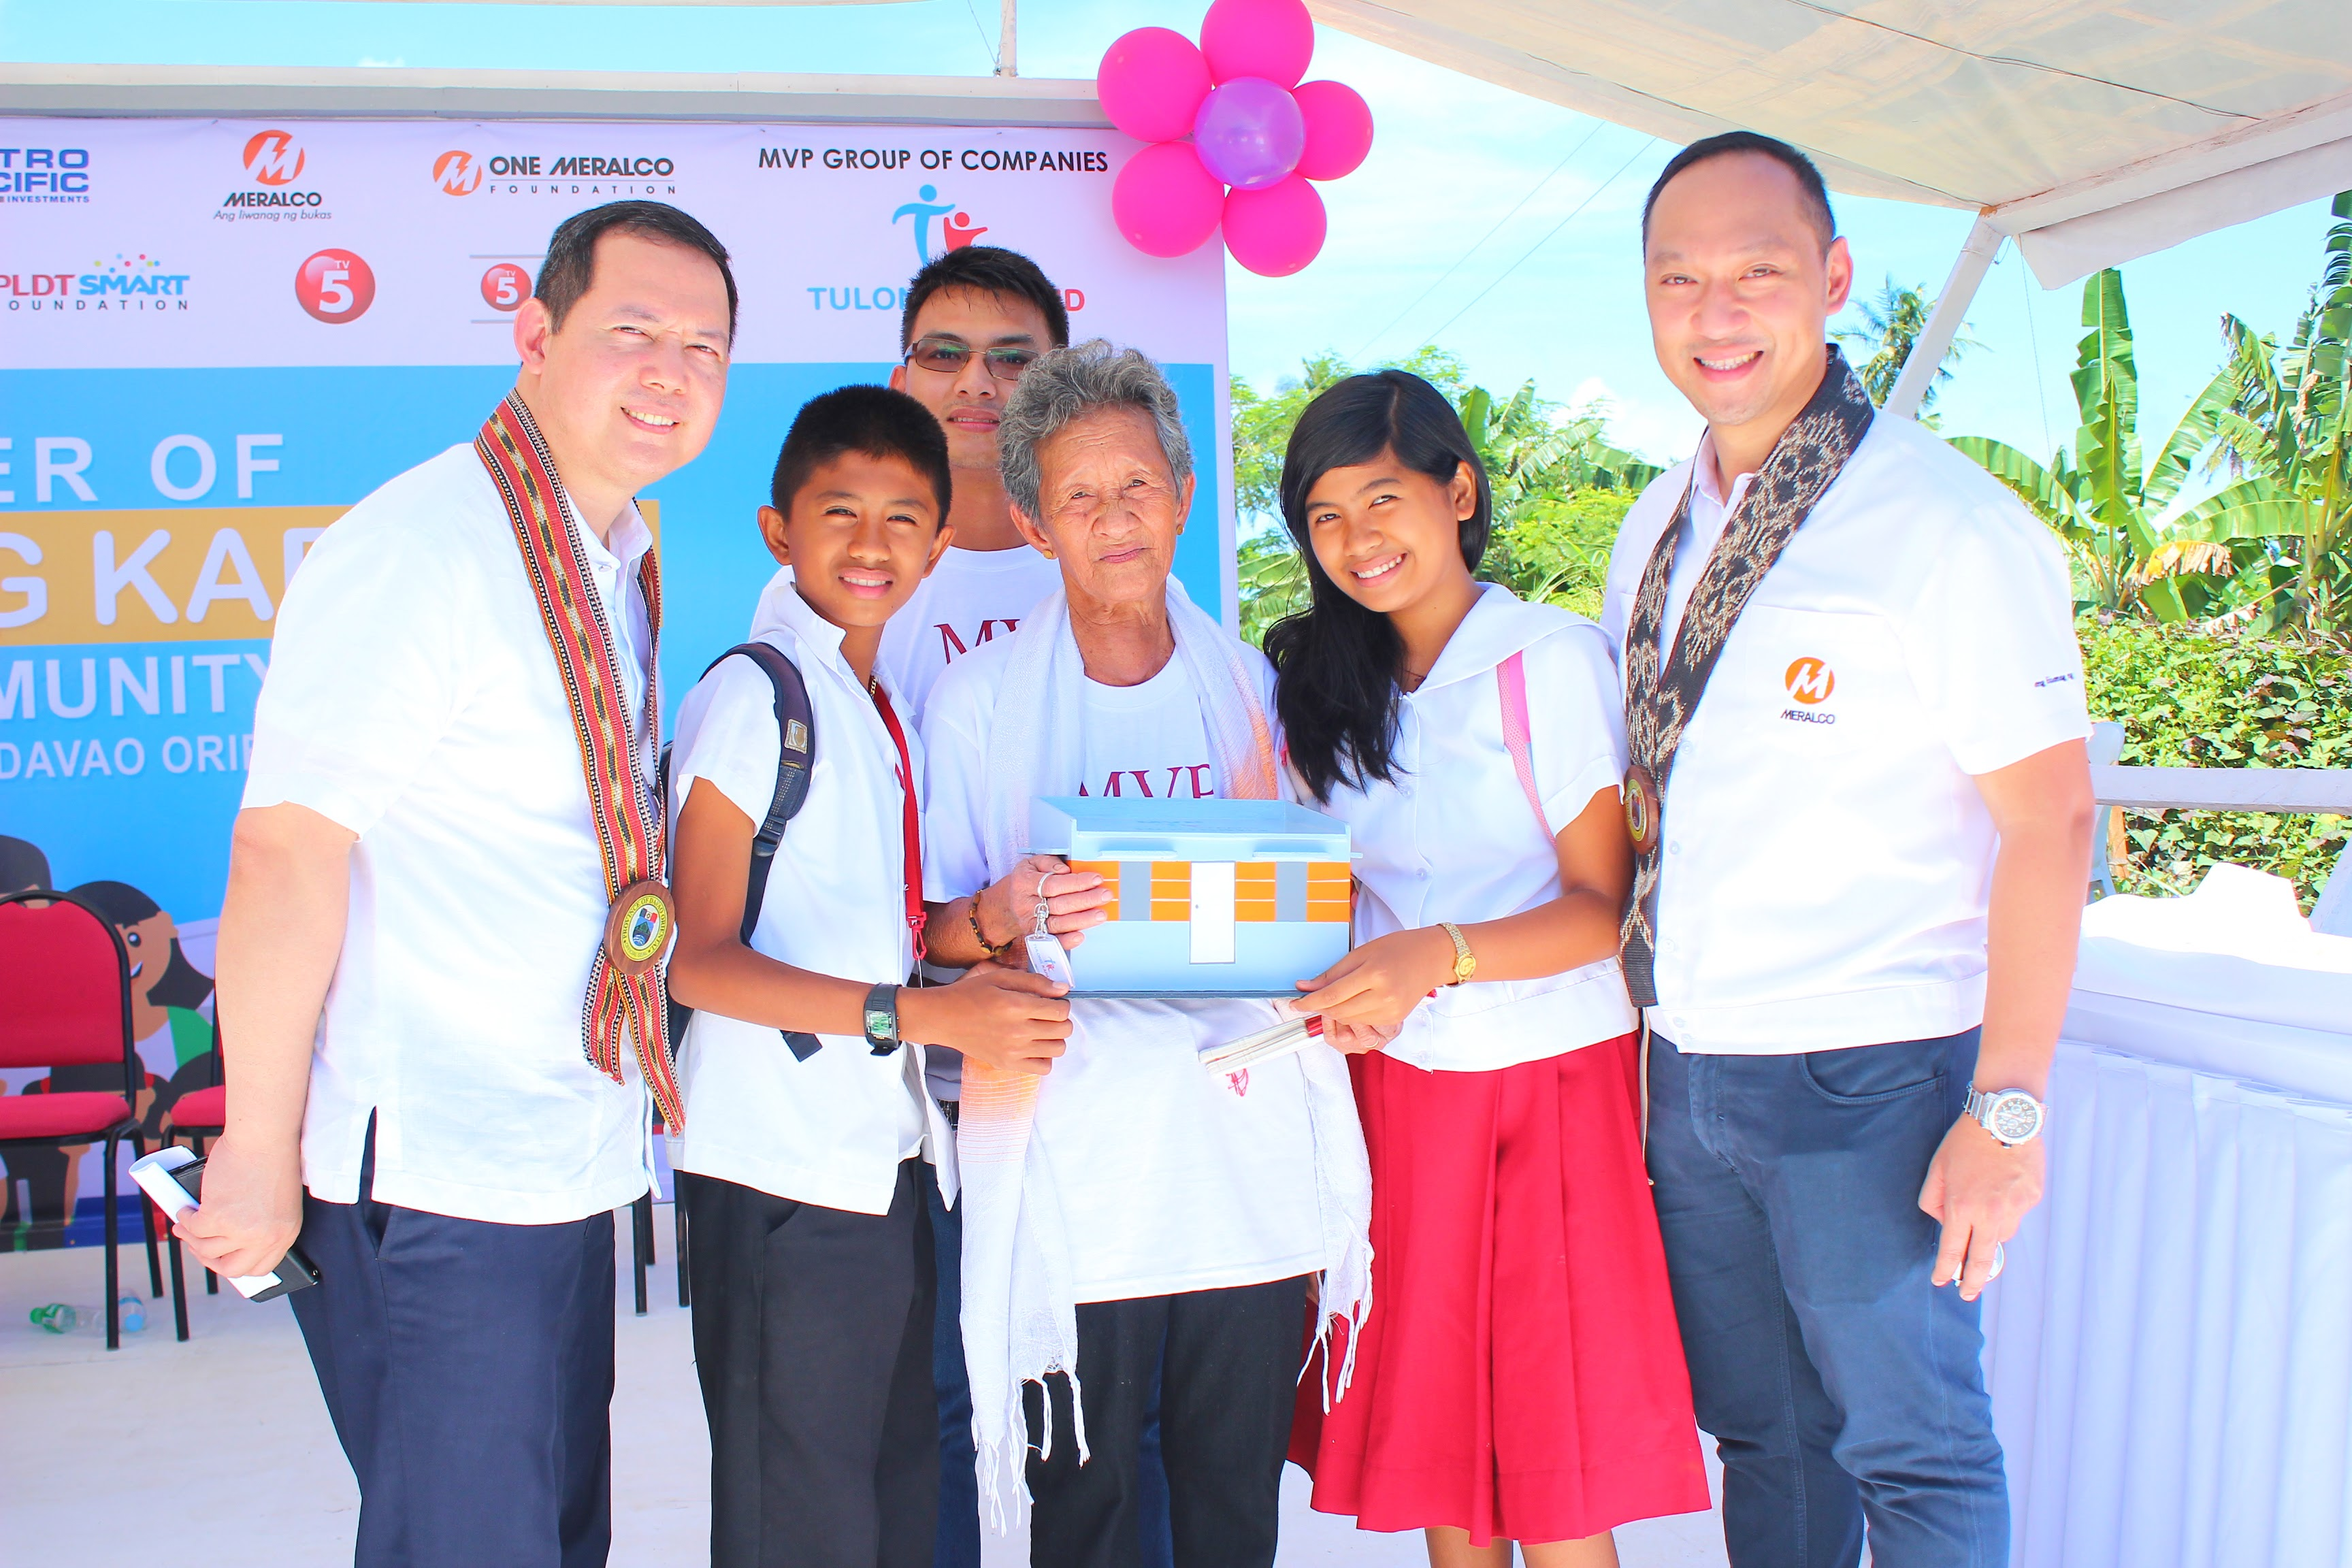 Atty. William S. Pamintuan (left), Meralco First Vice President and Head, Legal; and Jeffrey O. Tarayao (right), President of One Meralco Foundation and Chief CSR Officer of Meralco represented the company during the turnover ceremonies of the MVP Tulong Kapatid Homes in Brgy. Lambajon, Baganga, Davao Oriental. Meralco helped the Davao Electric Cooperative (DORECO) restore electrical facilities in 2012 after Typhoon Pablo knocked down poles and transmission lines in the municipalities of Cateel, Boston and Baganga. The foundation funded the extension of DORECO's electrical facilities to reach the new homes of the typhoon victims.